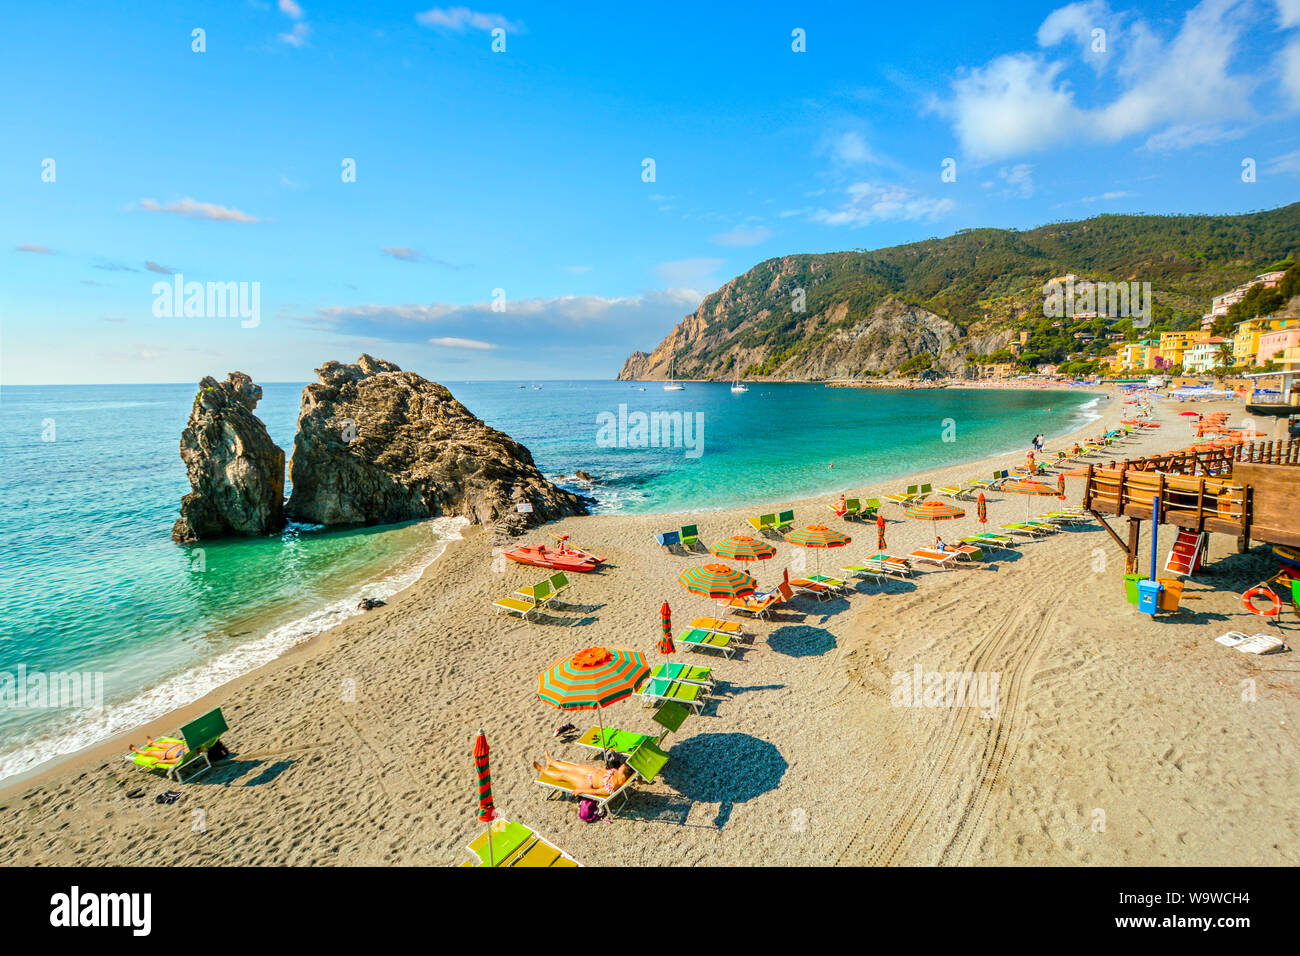 Chairs and umbrellas fill the Spiaggia di Fegina, the wide sandy beach in front of the old section of the village of Monterosso al Mare, Italy Stock Photo